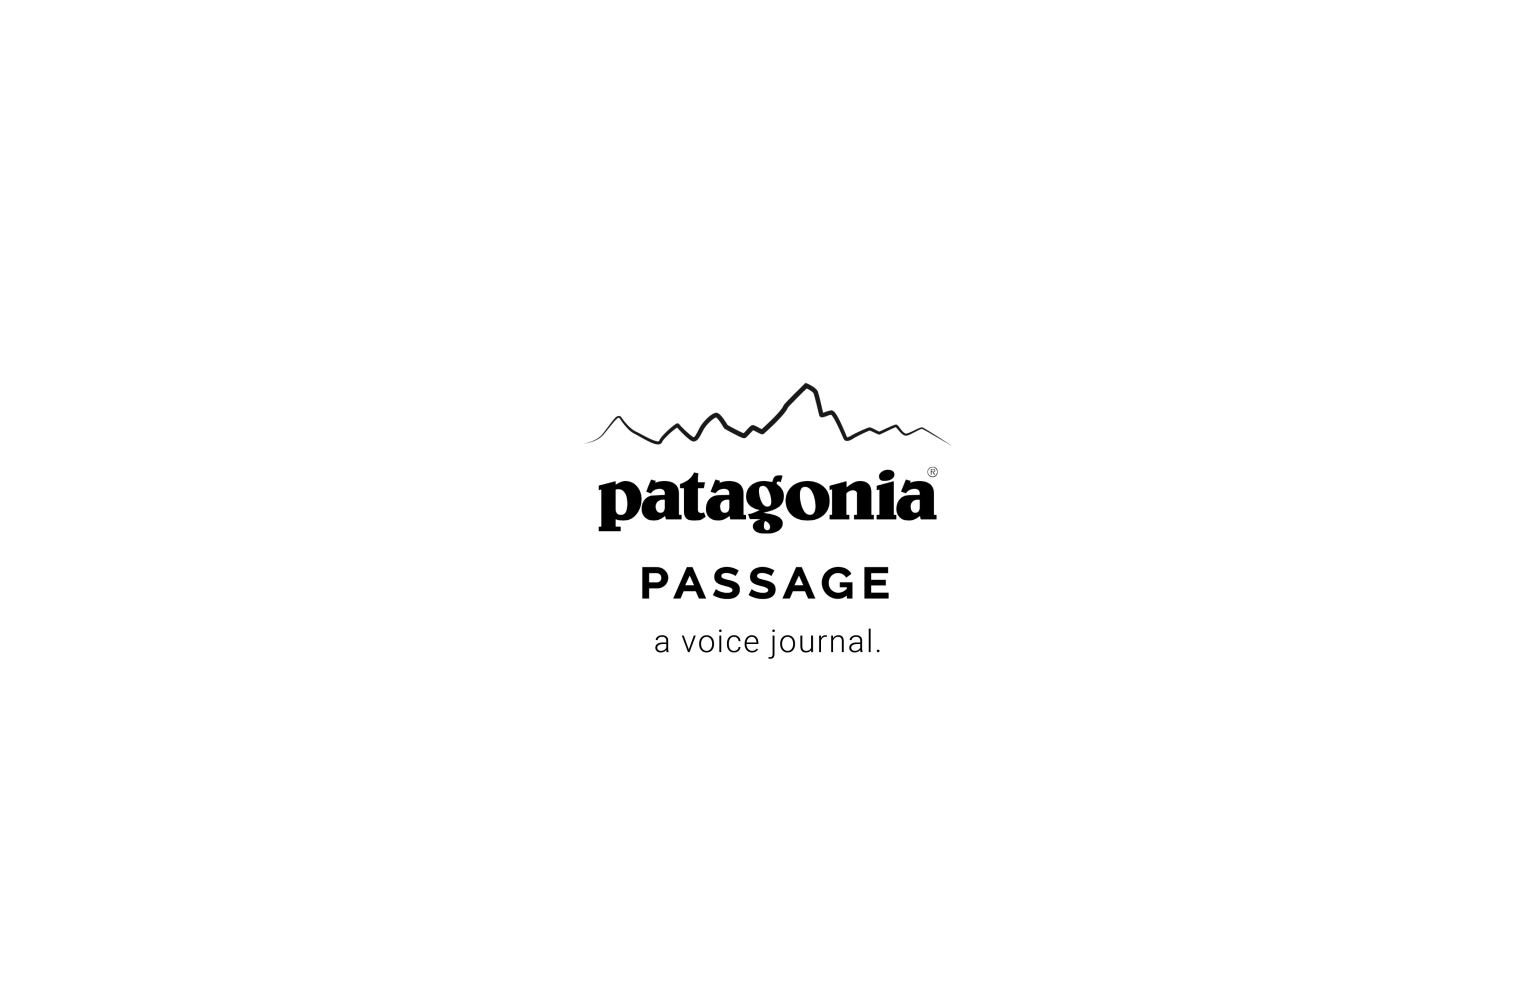 Passage by Patagonia